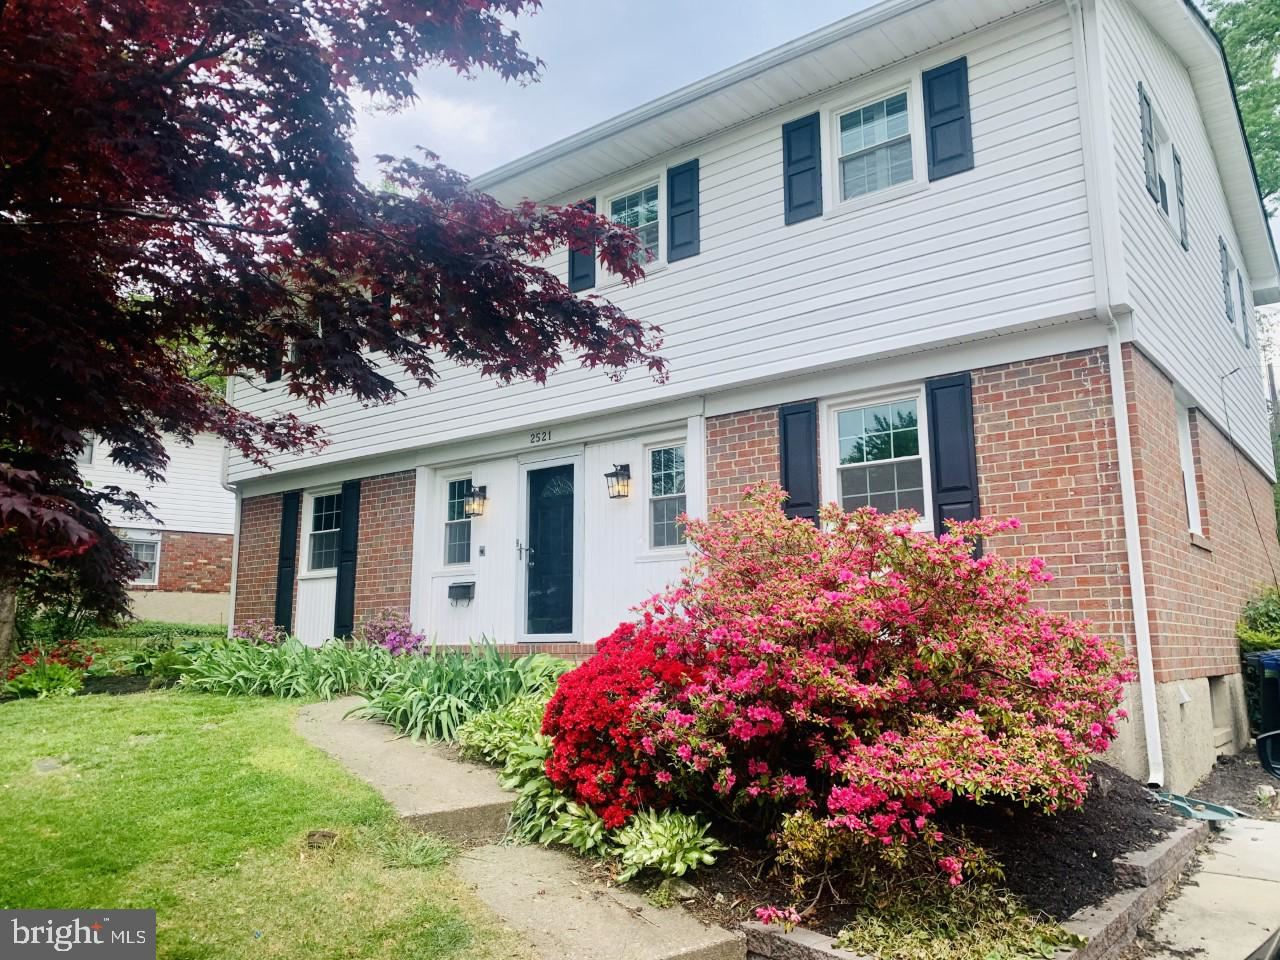 2521 GAINSFORD RD, Lutherville Timonium, MD 21093 - MLS#: MDBC528052